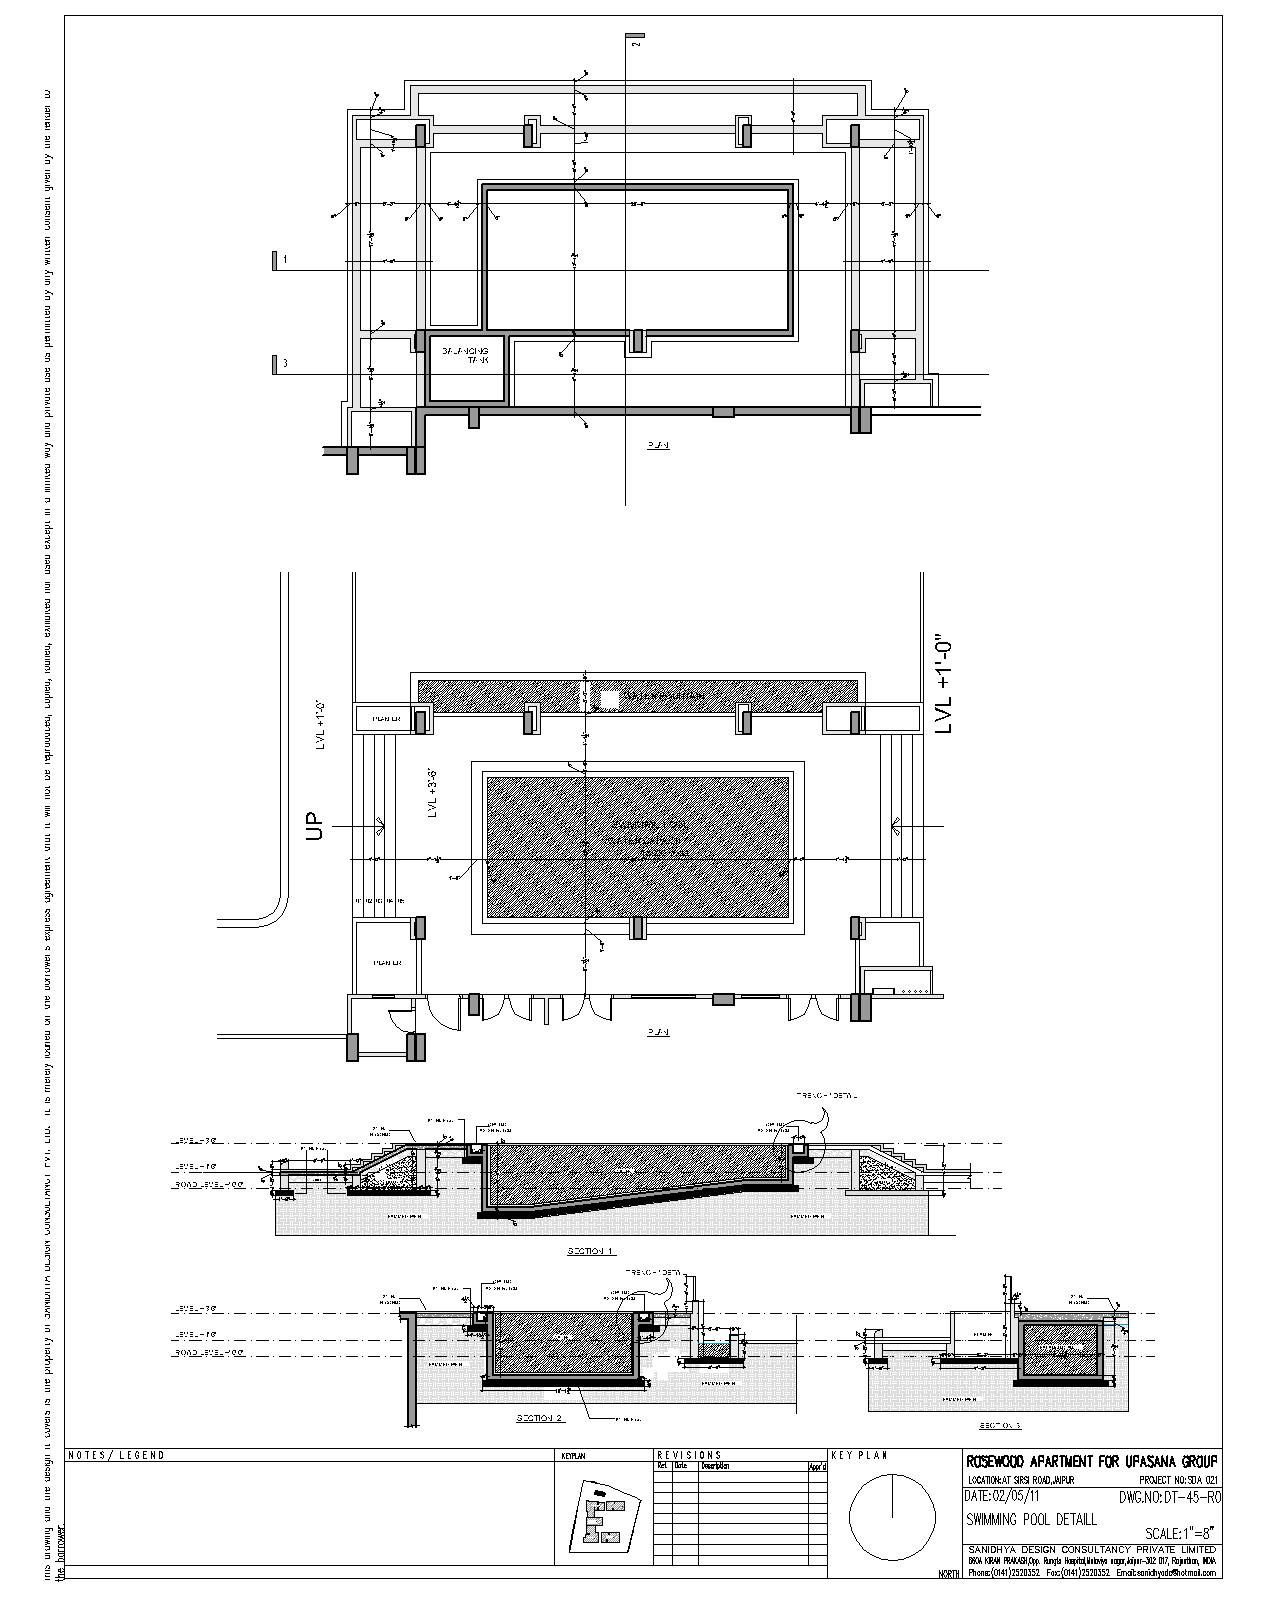 swimming pool section detail drawinteriorcom - Swimming Pool Structural Design